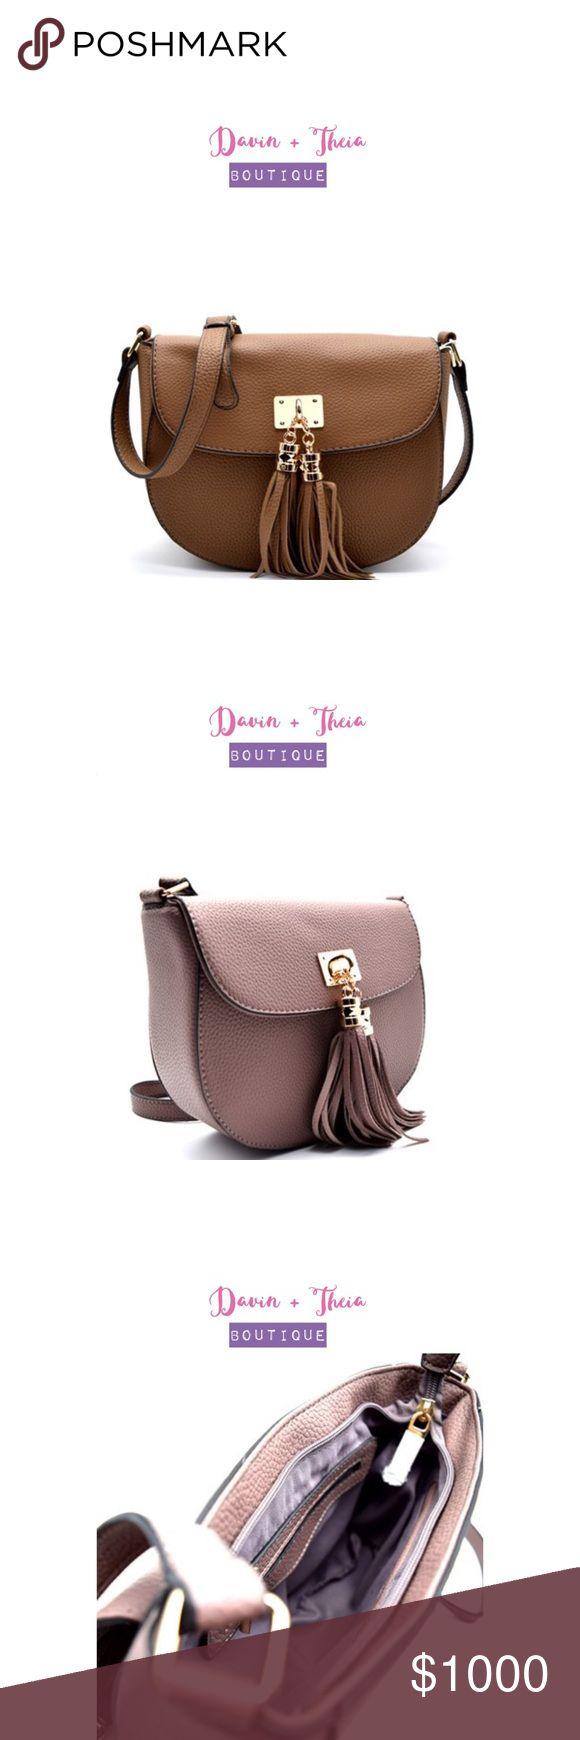 "🌟Pebbled Vegan Leather Crossbody Bag🌟 🌟BRAND NEW🌟  Tassel Accent Flap Crossbody Bag - Pebbled Vegan Leather - Magnetic Snap Closure - Back Exterior Zip Pocket - Inner Zip Pocket - Two Inner Slip Pockets - Adjustable Shoulder Strap  Dimension: 8.5""L x 7.5""H x 3""W  Color: Stone  Other Colors Available on Separate Listing: Mauve, Black, Navy  💟Submit your offer thru the ""Offer"" button 💟NO Price discussion in the comment 💟NO Lowballing 💟NO Trades Davin+Theia Bags Crossbody Bags"